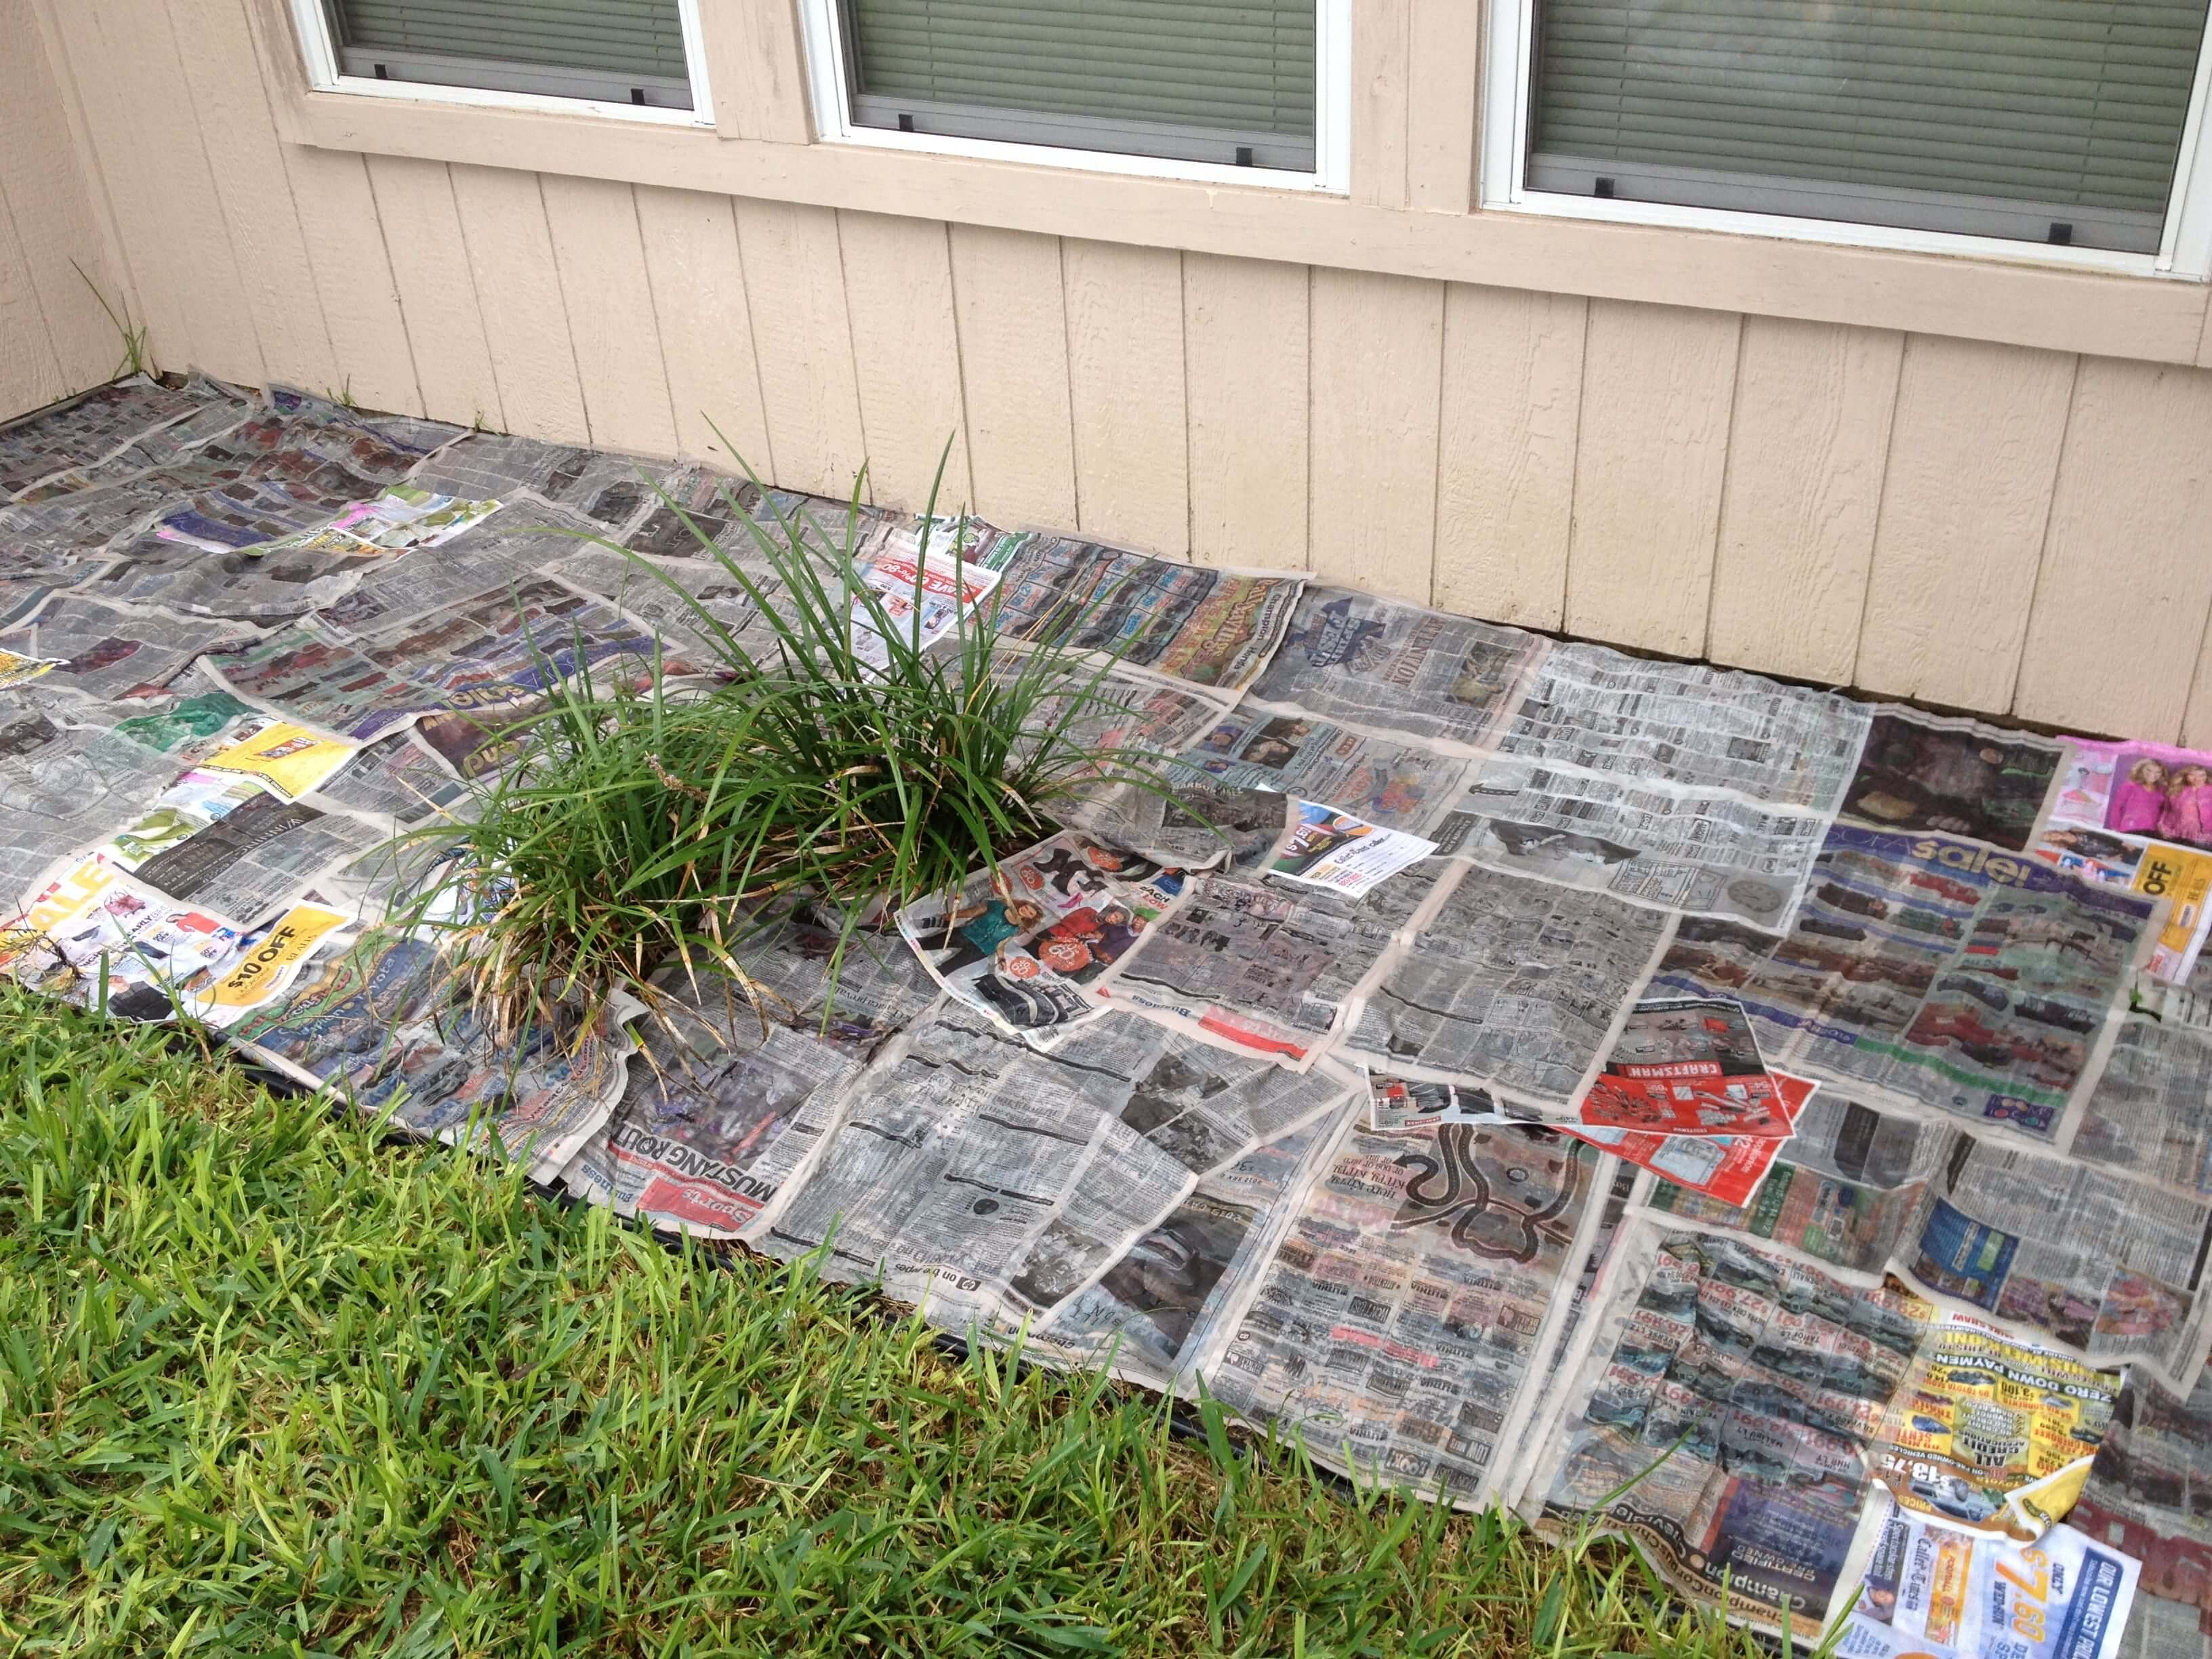 Using newspaper to protect your plants